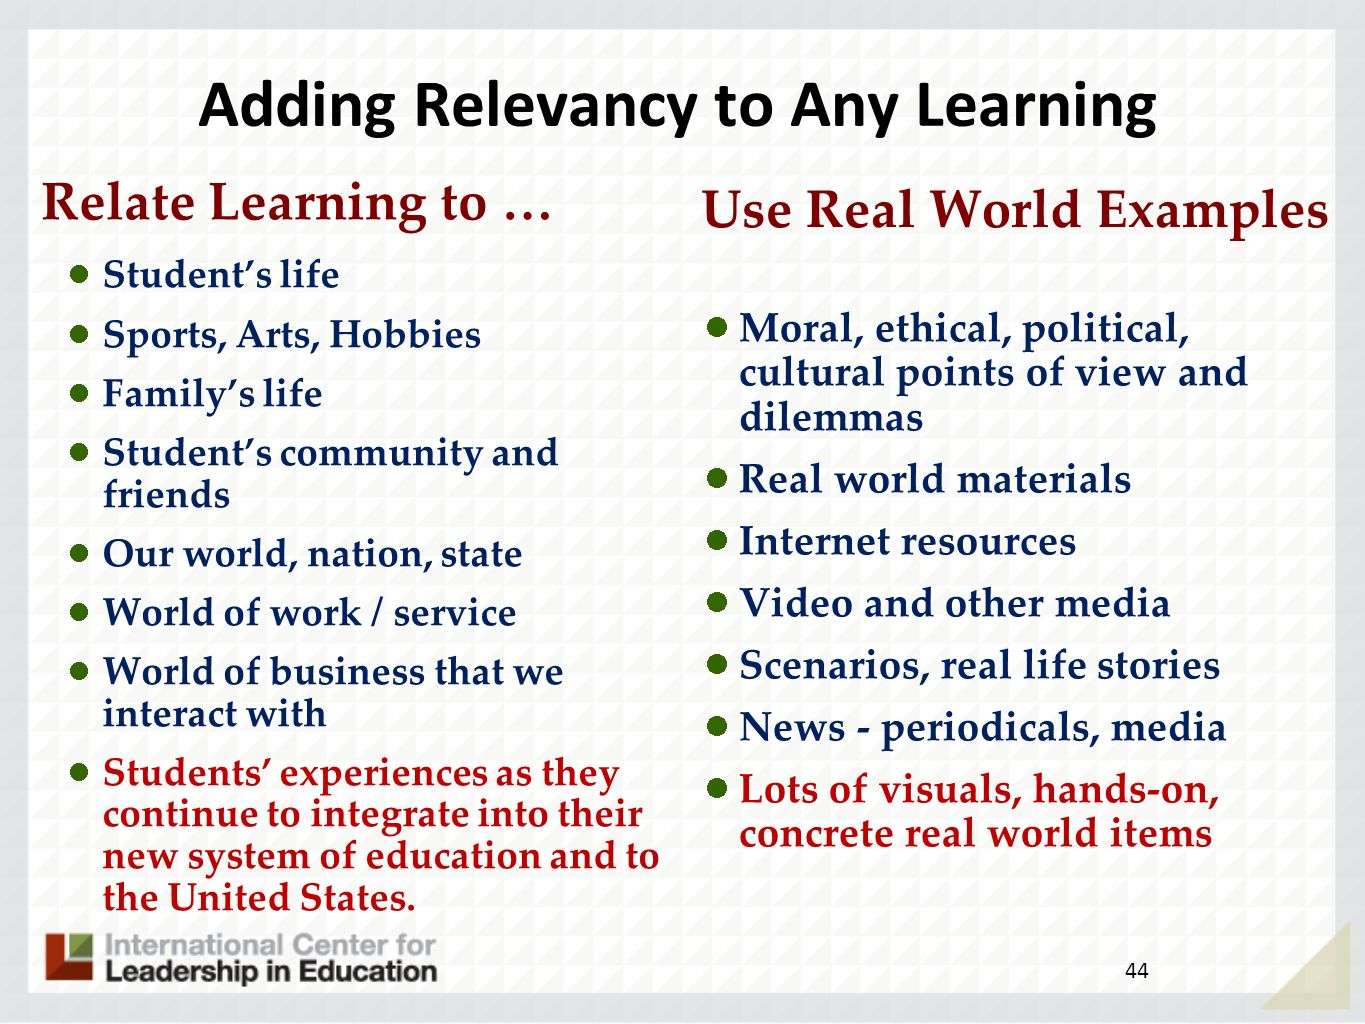 Adding Relevancy to Any Learning